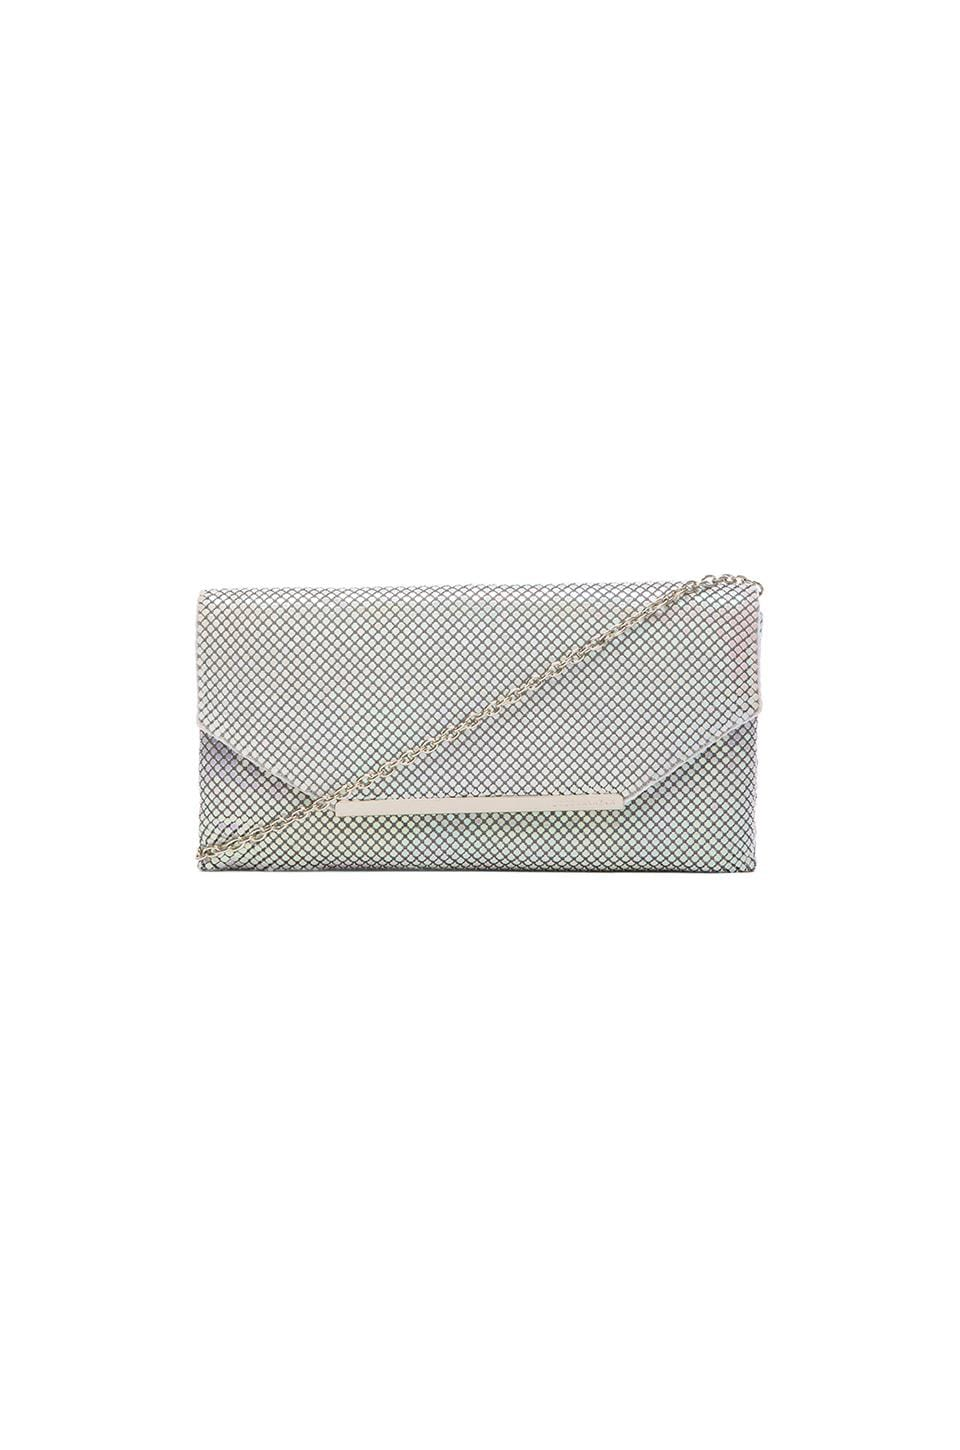 BCBGMAXAZRIA Bardot Metal Mesh Clutch in White